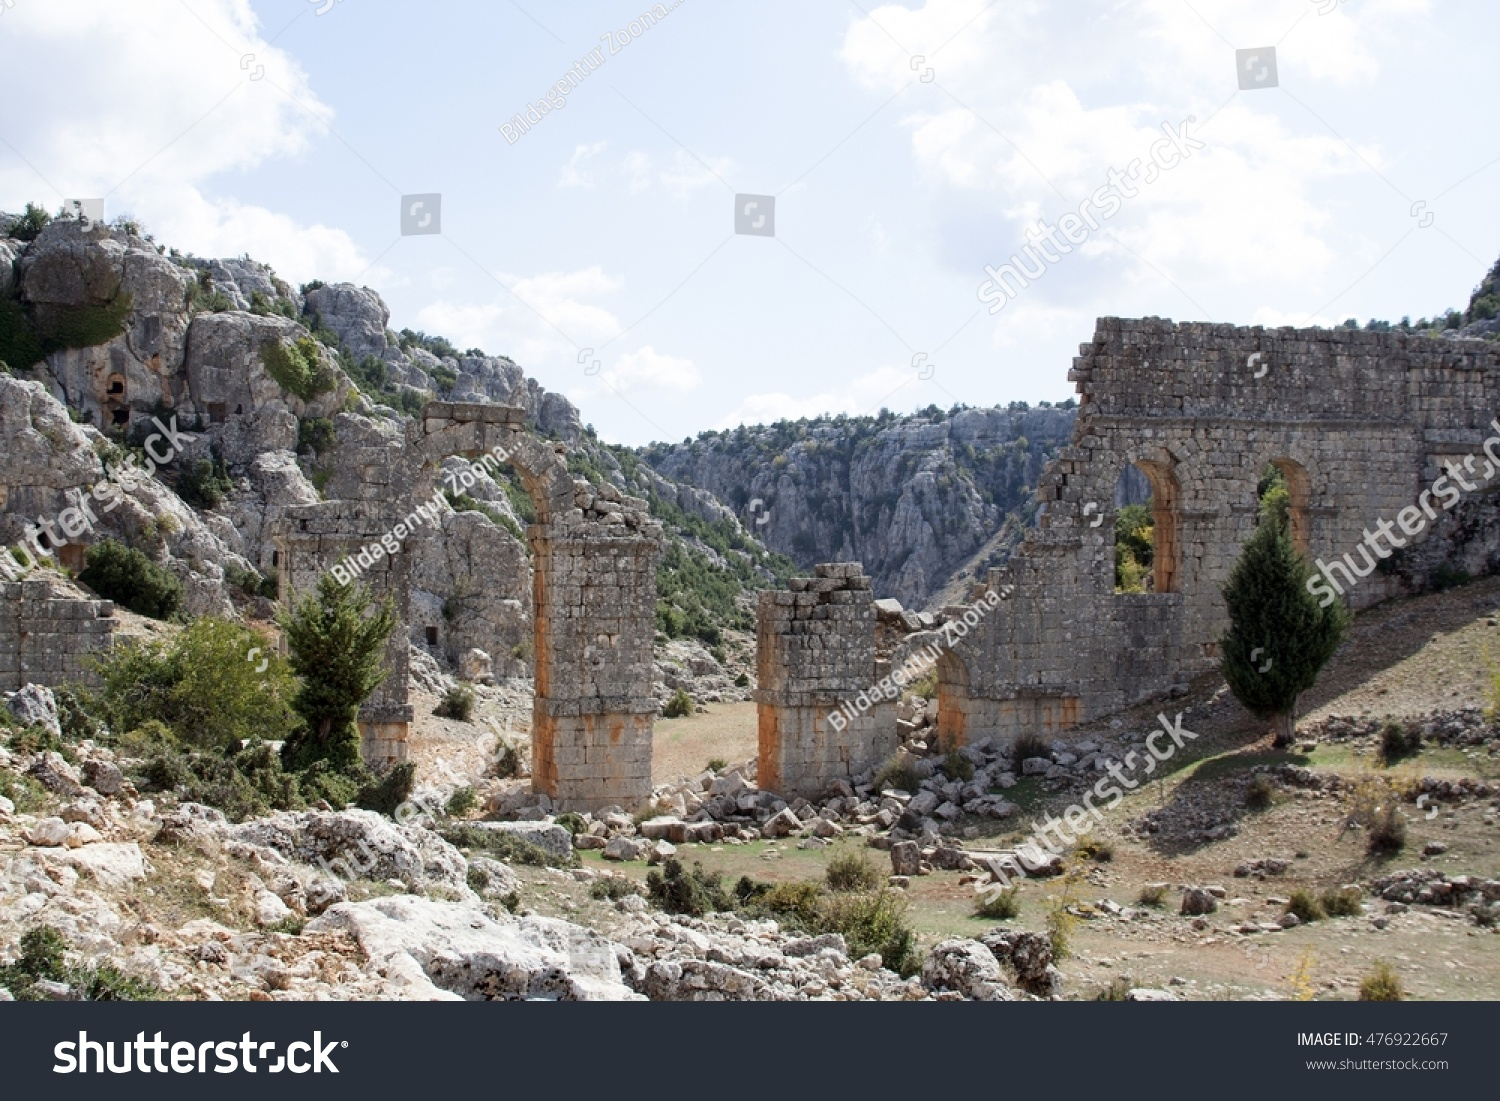 Adana Uzuncaburc Turkey Ruins Ancient Cities Stockfoto ...